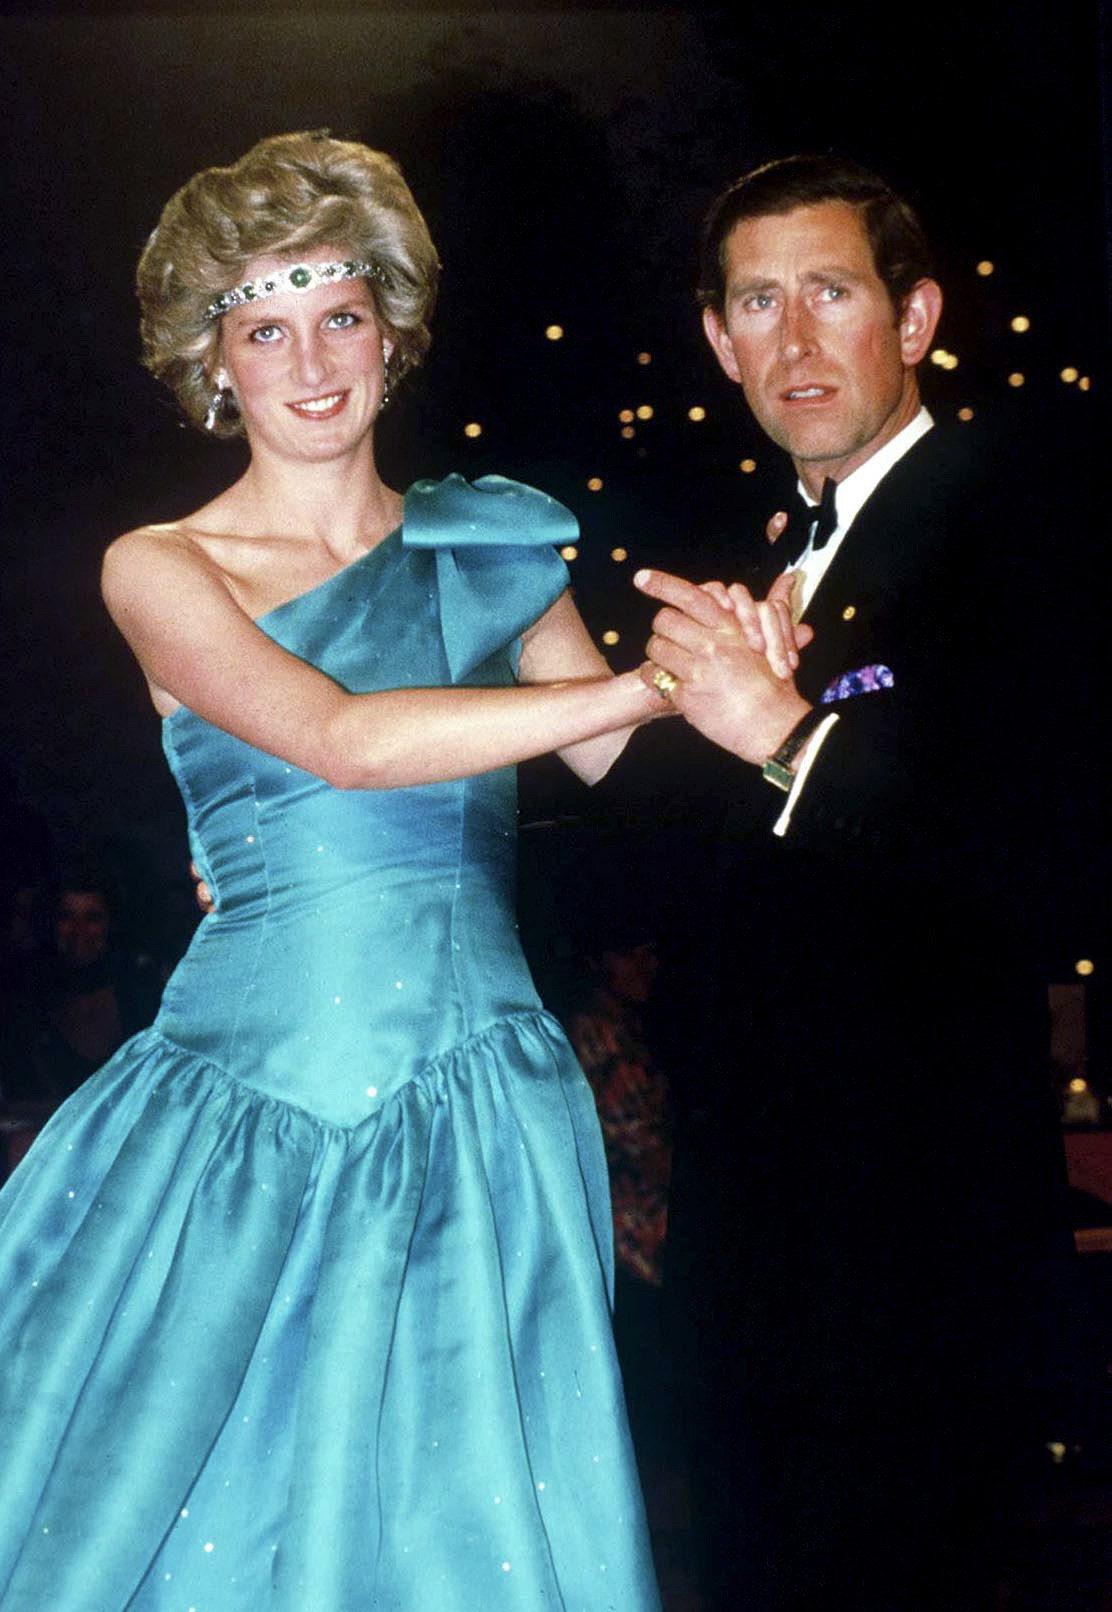 Image Credits: Getty Images | Princess Diana Interchangeably Used the Queen's Necklace